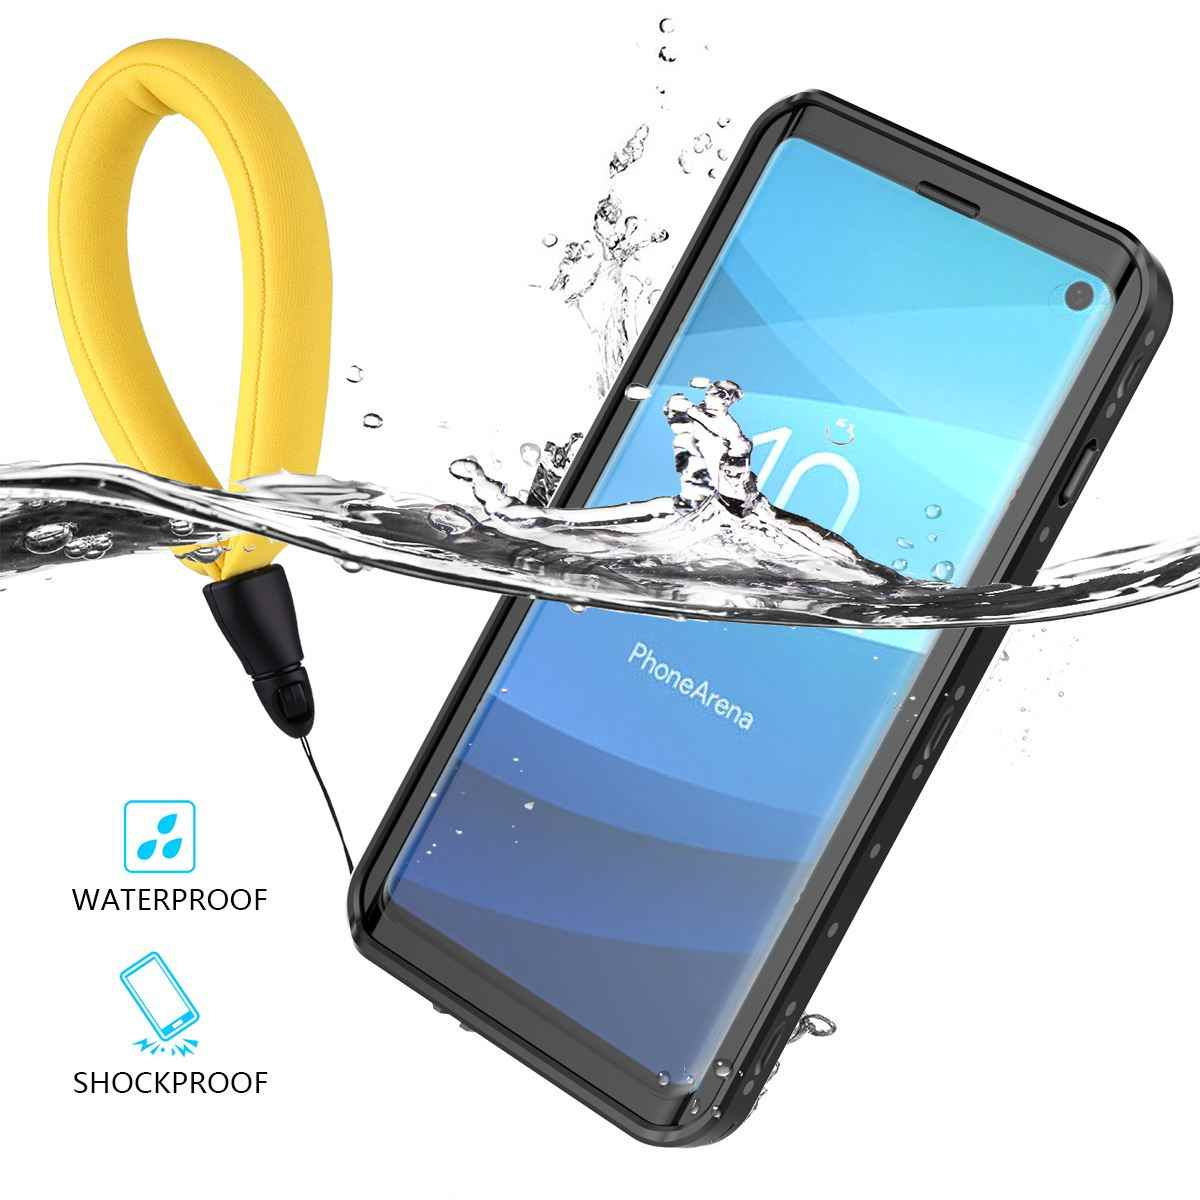 separation shoes e70b2 9650a IP68 Waterproof phone Case For Samsung Galaxy S10 360 Degree Protection  Dustproof Shockproof phone Cover For Samsung Galaxy S10